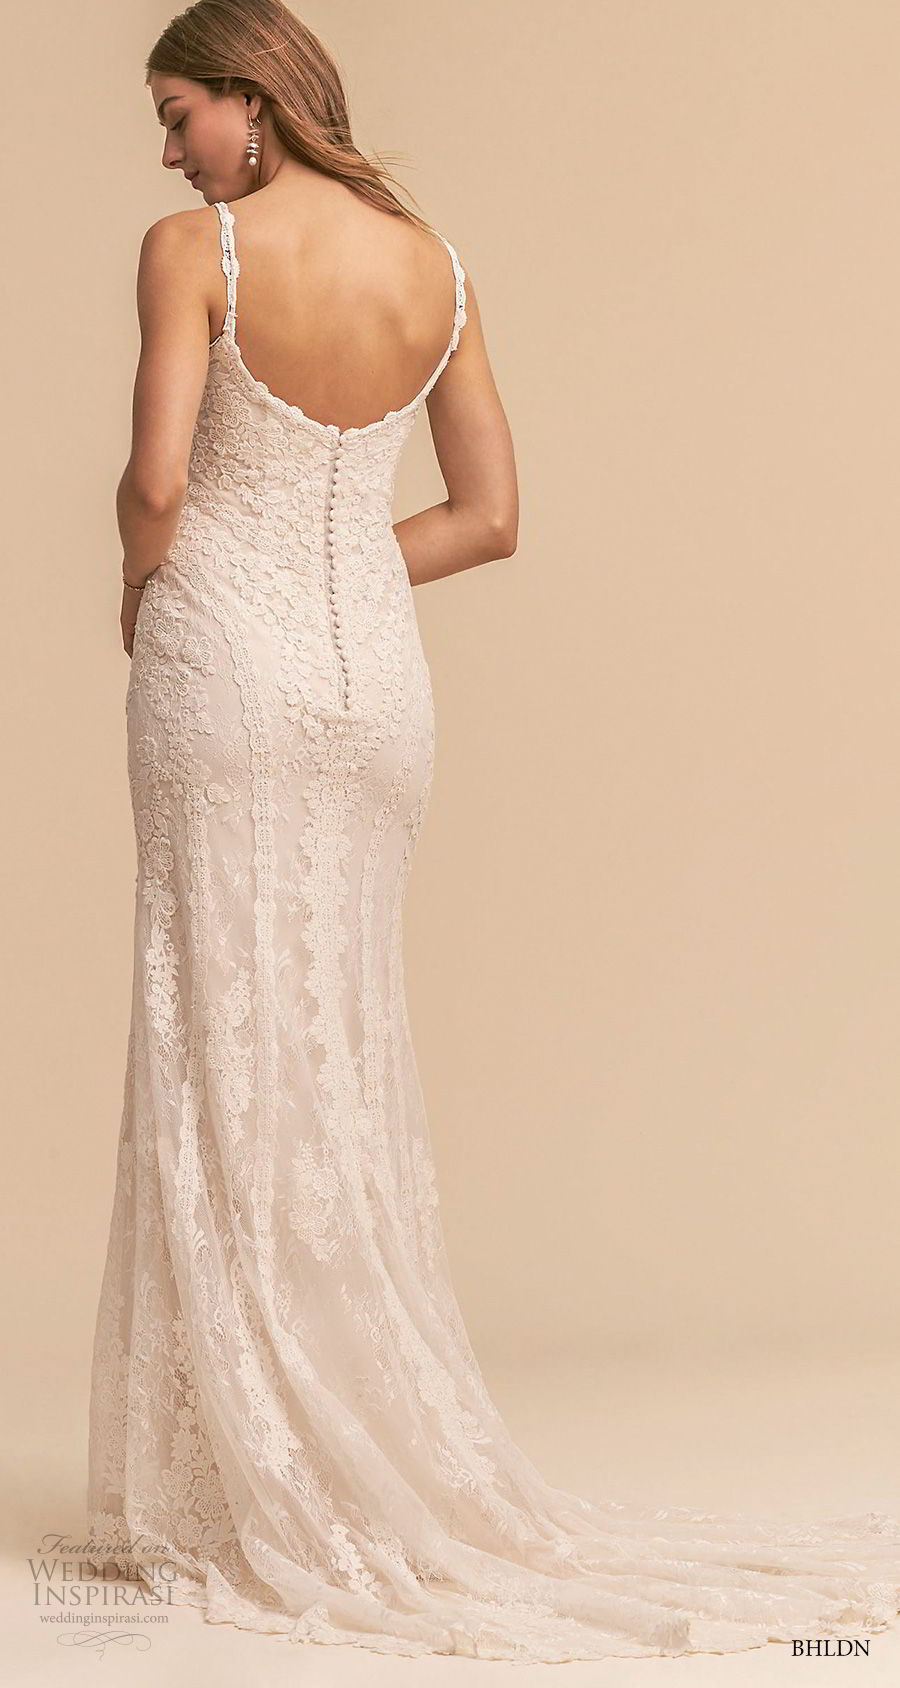 bhldn 2018 whispers bridal sleeveless thin strap sweetheart full embellishment elegant romantic sheath wedding dress sweep train (9) bv